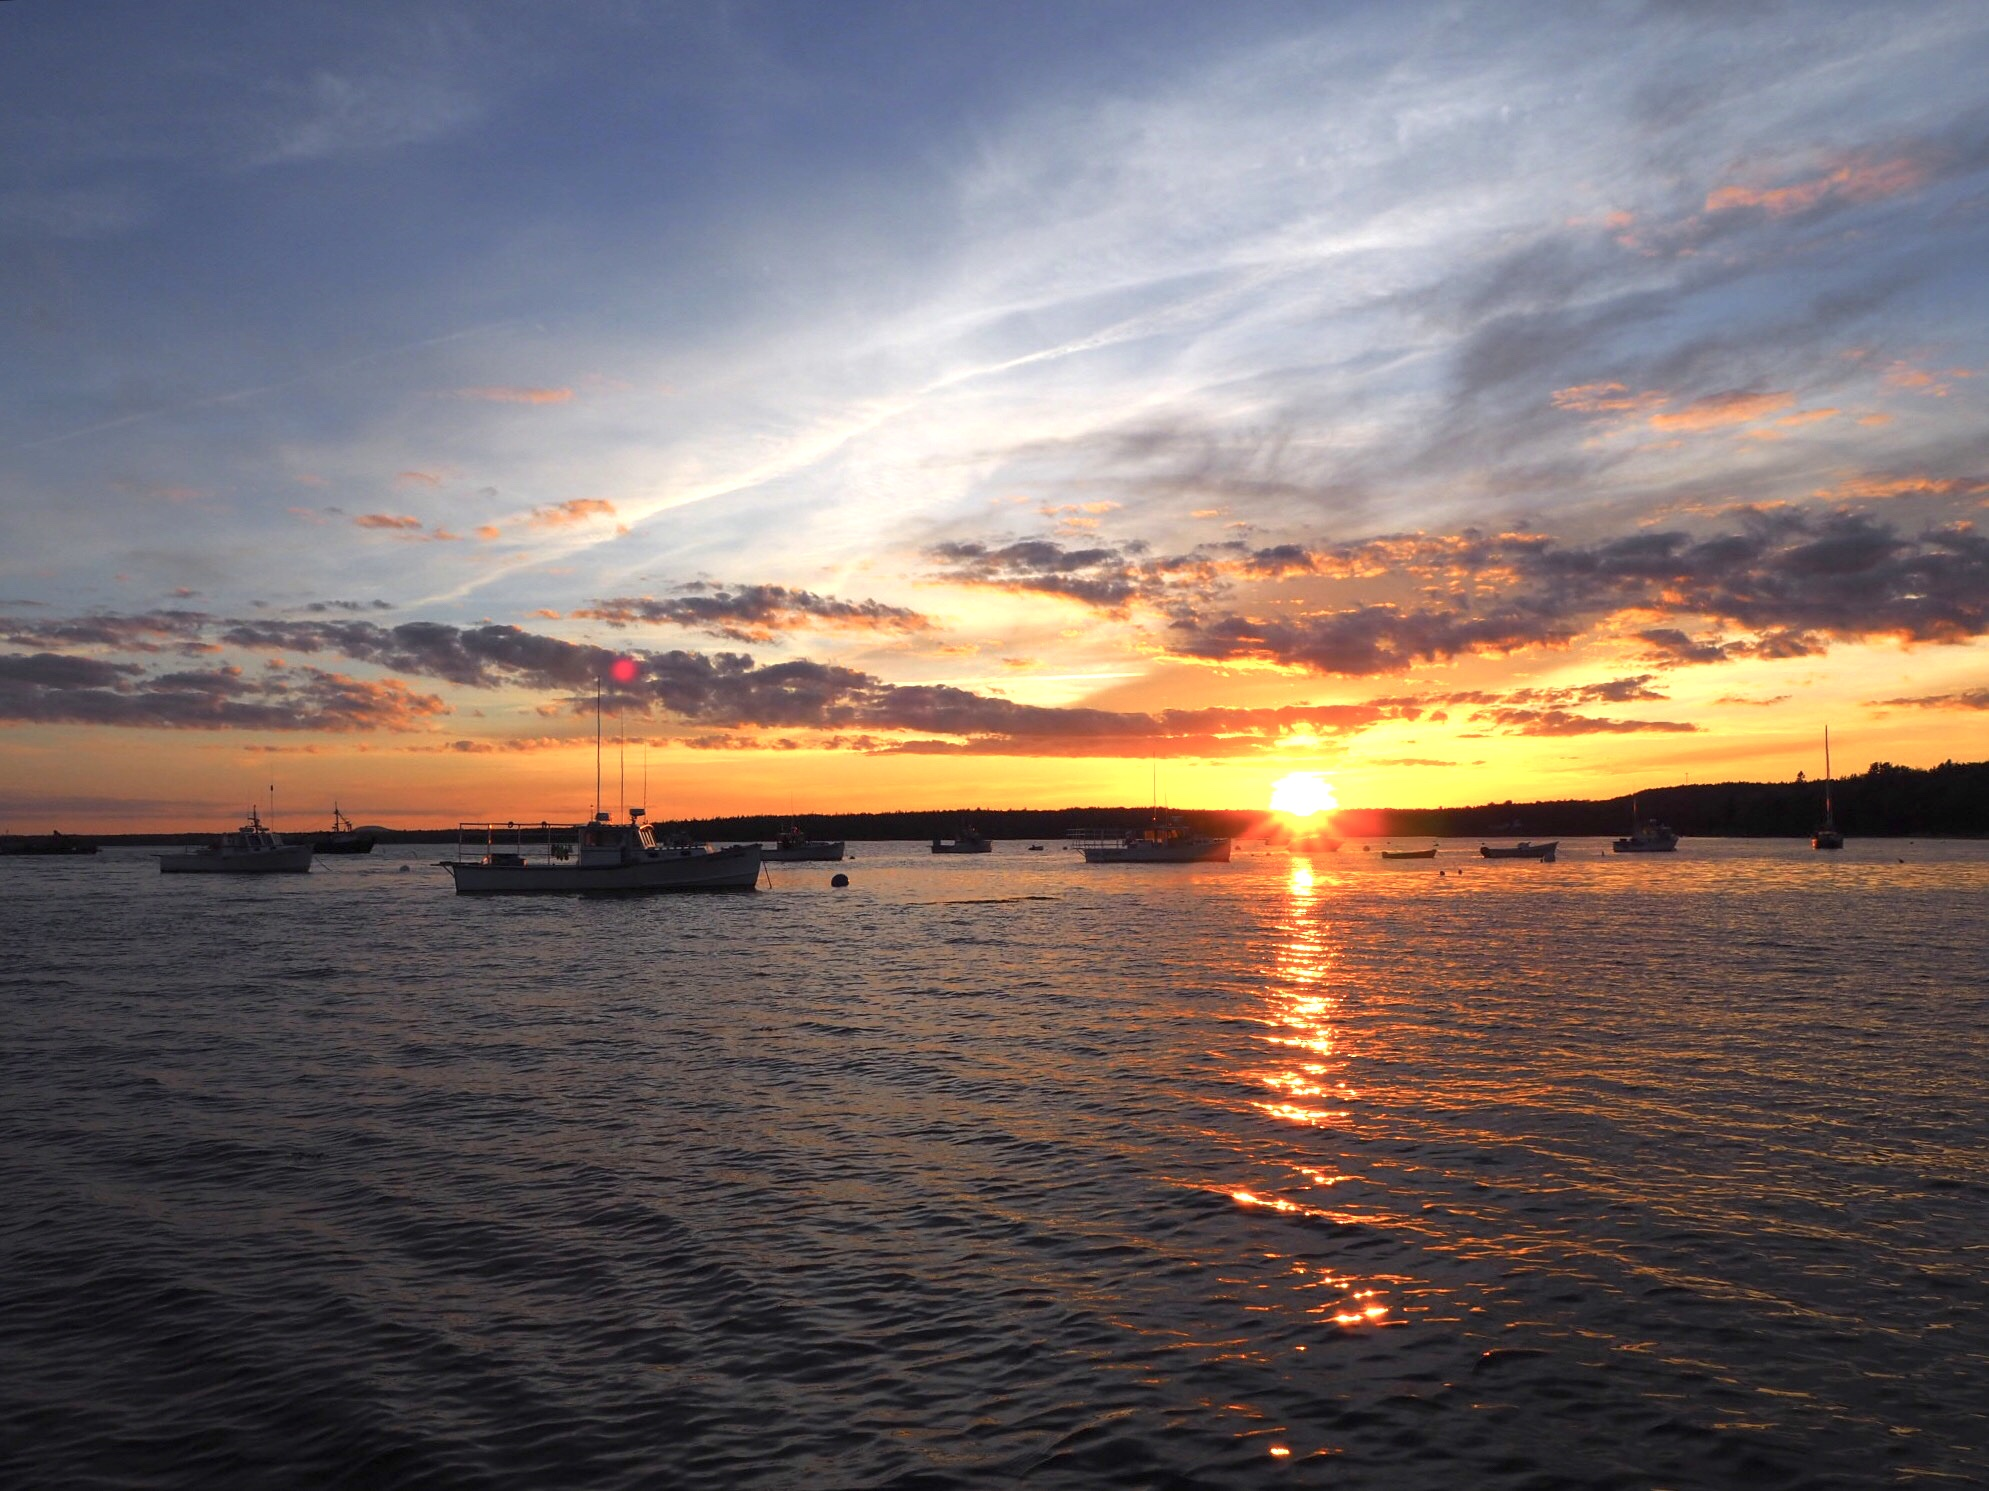 The sun sets over Eastern Bay in Lamoine State Park